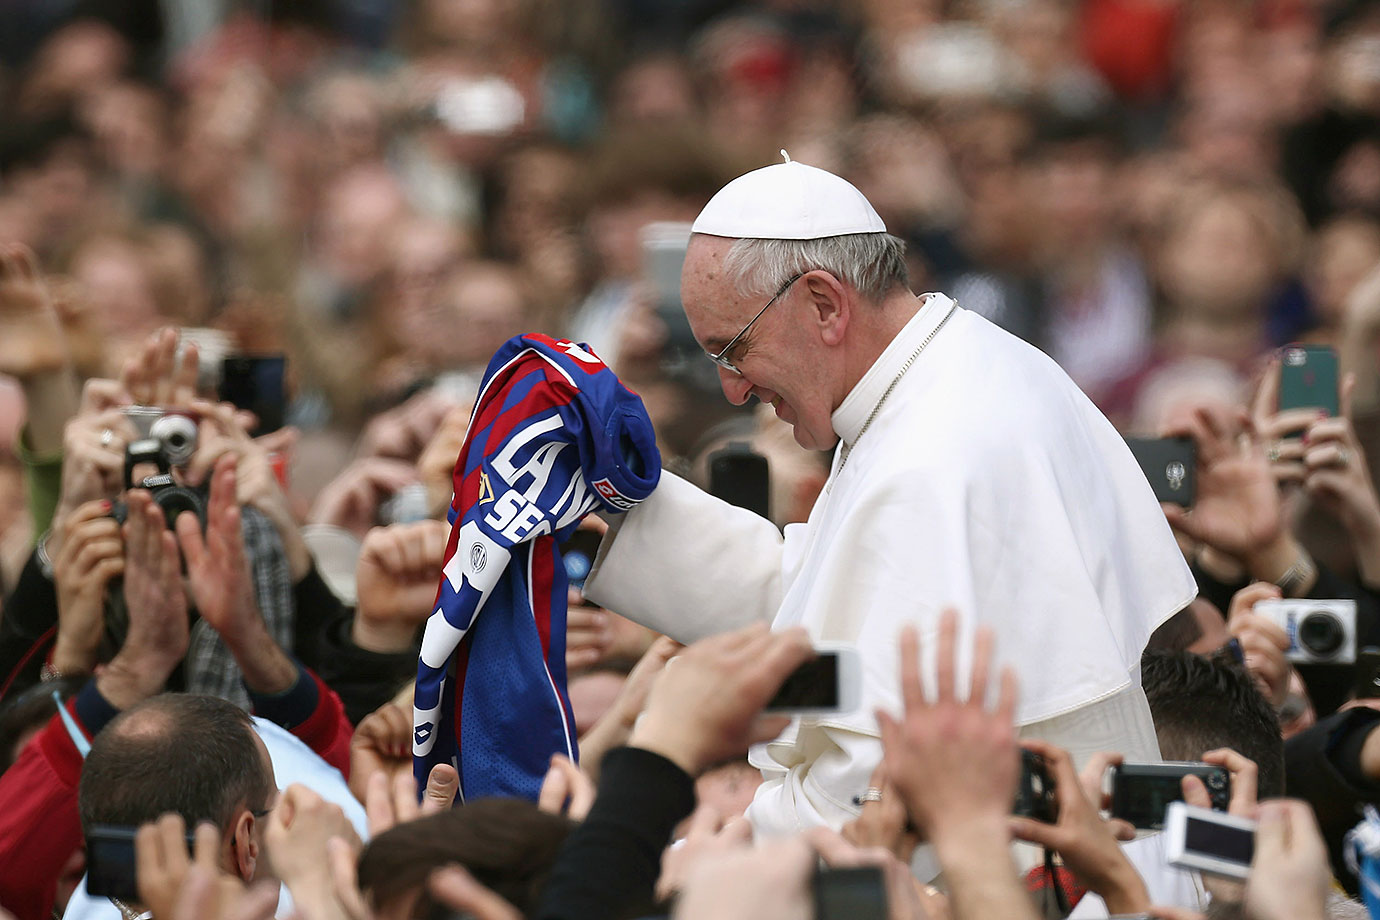 Pope Francis is given a San Lorenzo jersey as he greets the faithful prior to his first 'Urbi et Orbi' blessing from the balcony of St. Peter's Basilica during Easter Mass on March 31, 2013 in Vatican City.